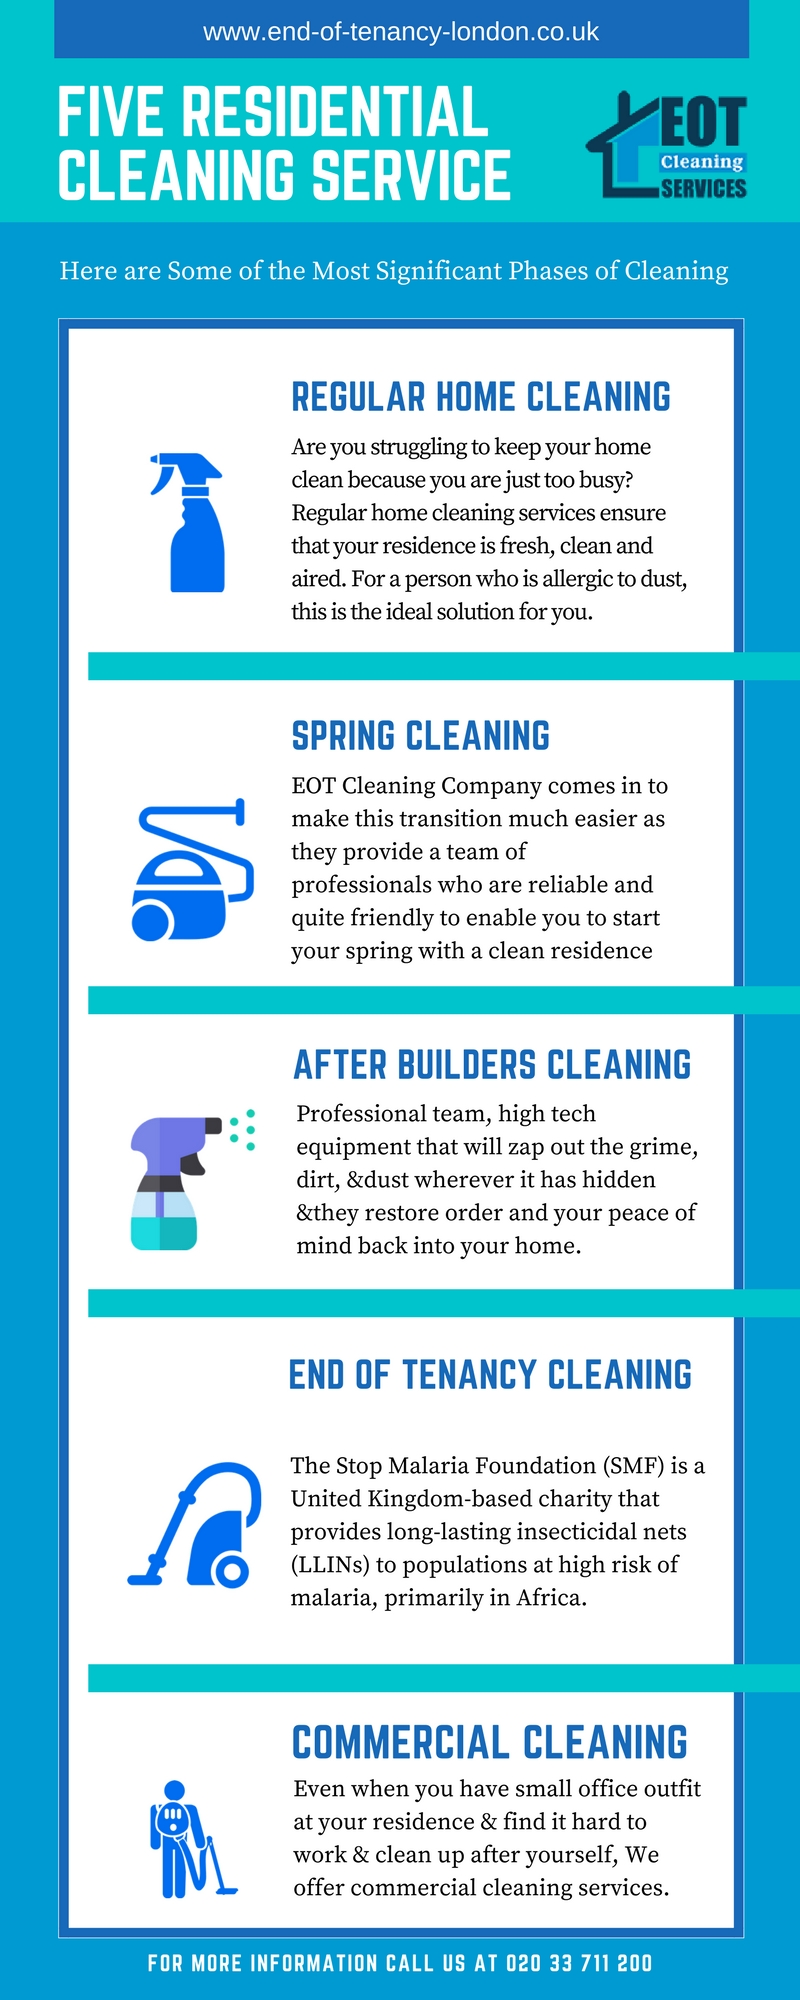 5-Residential-Cleaning-Services